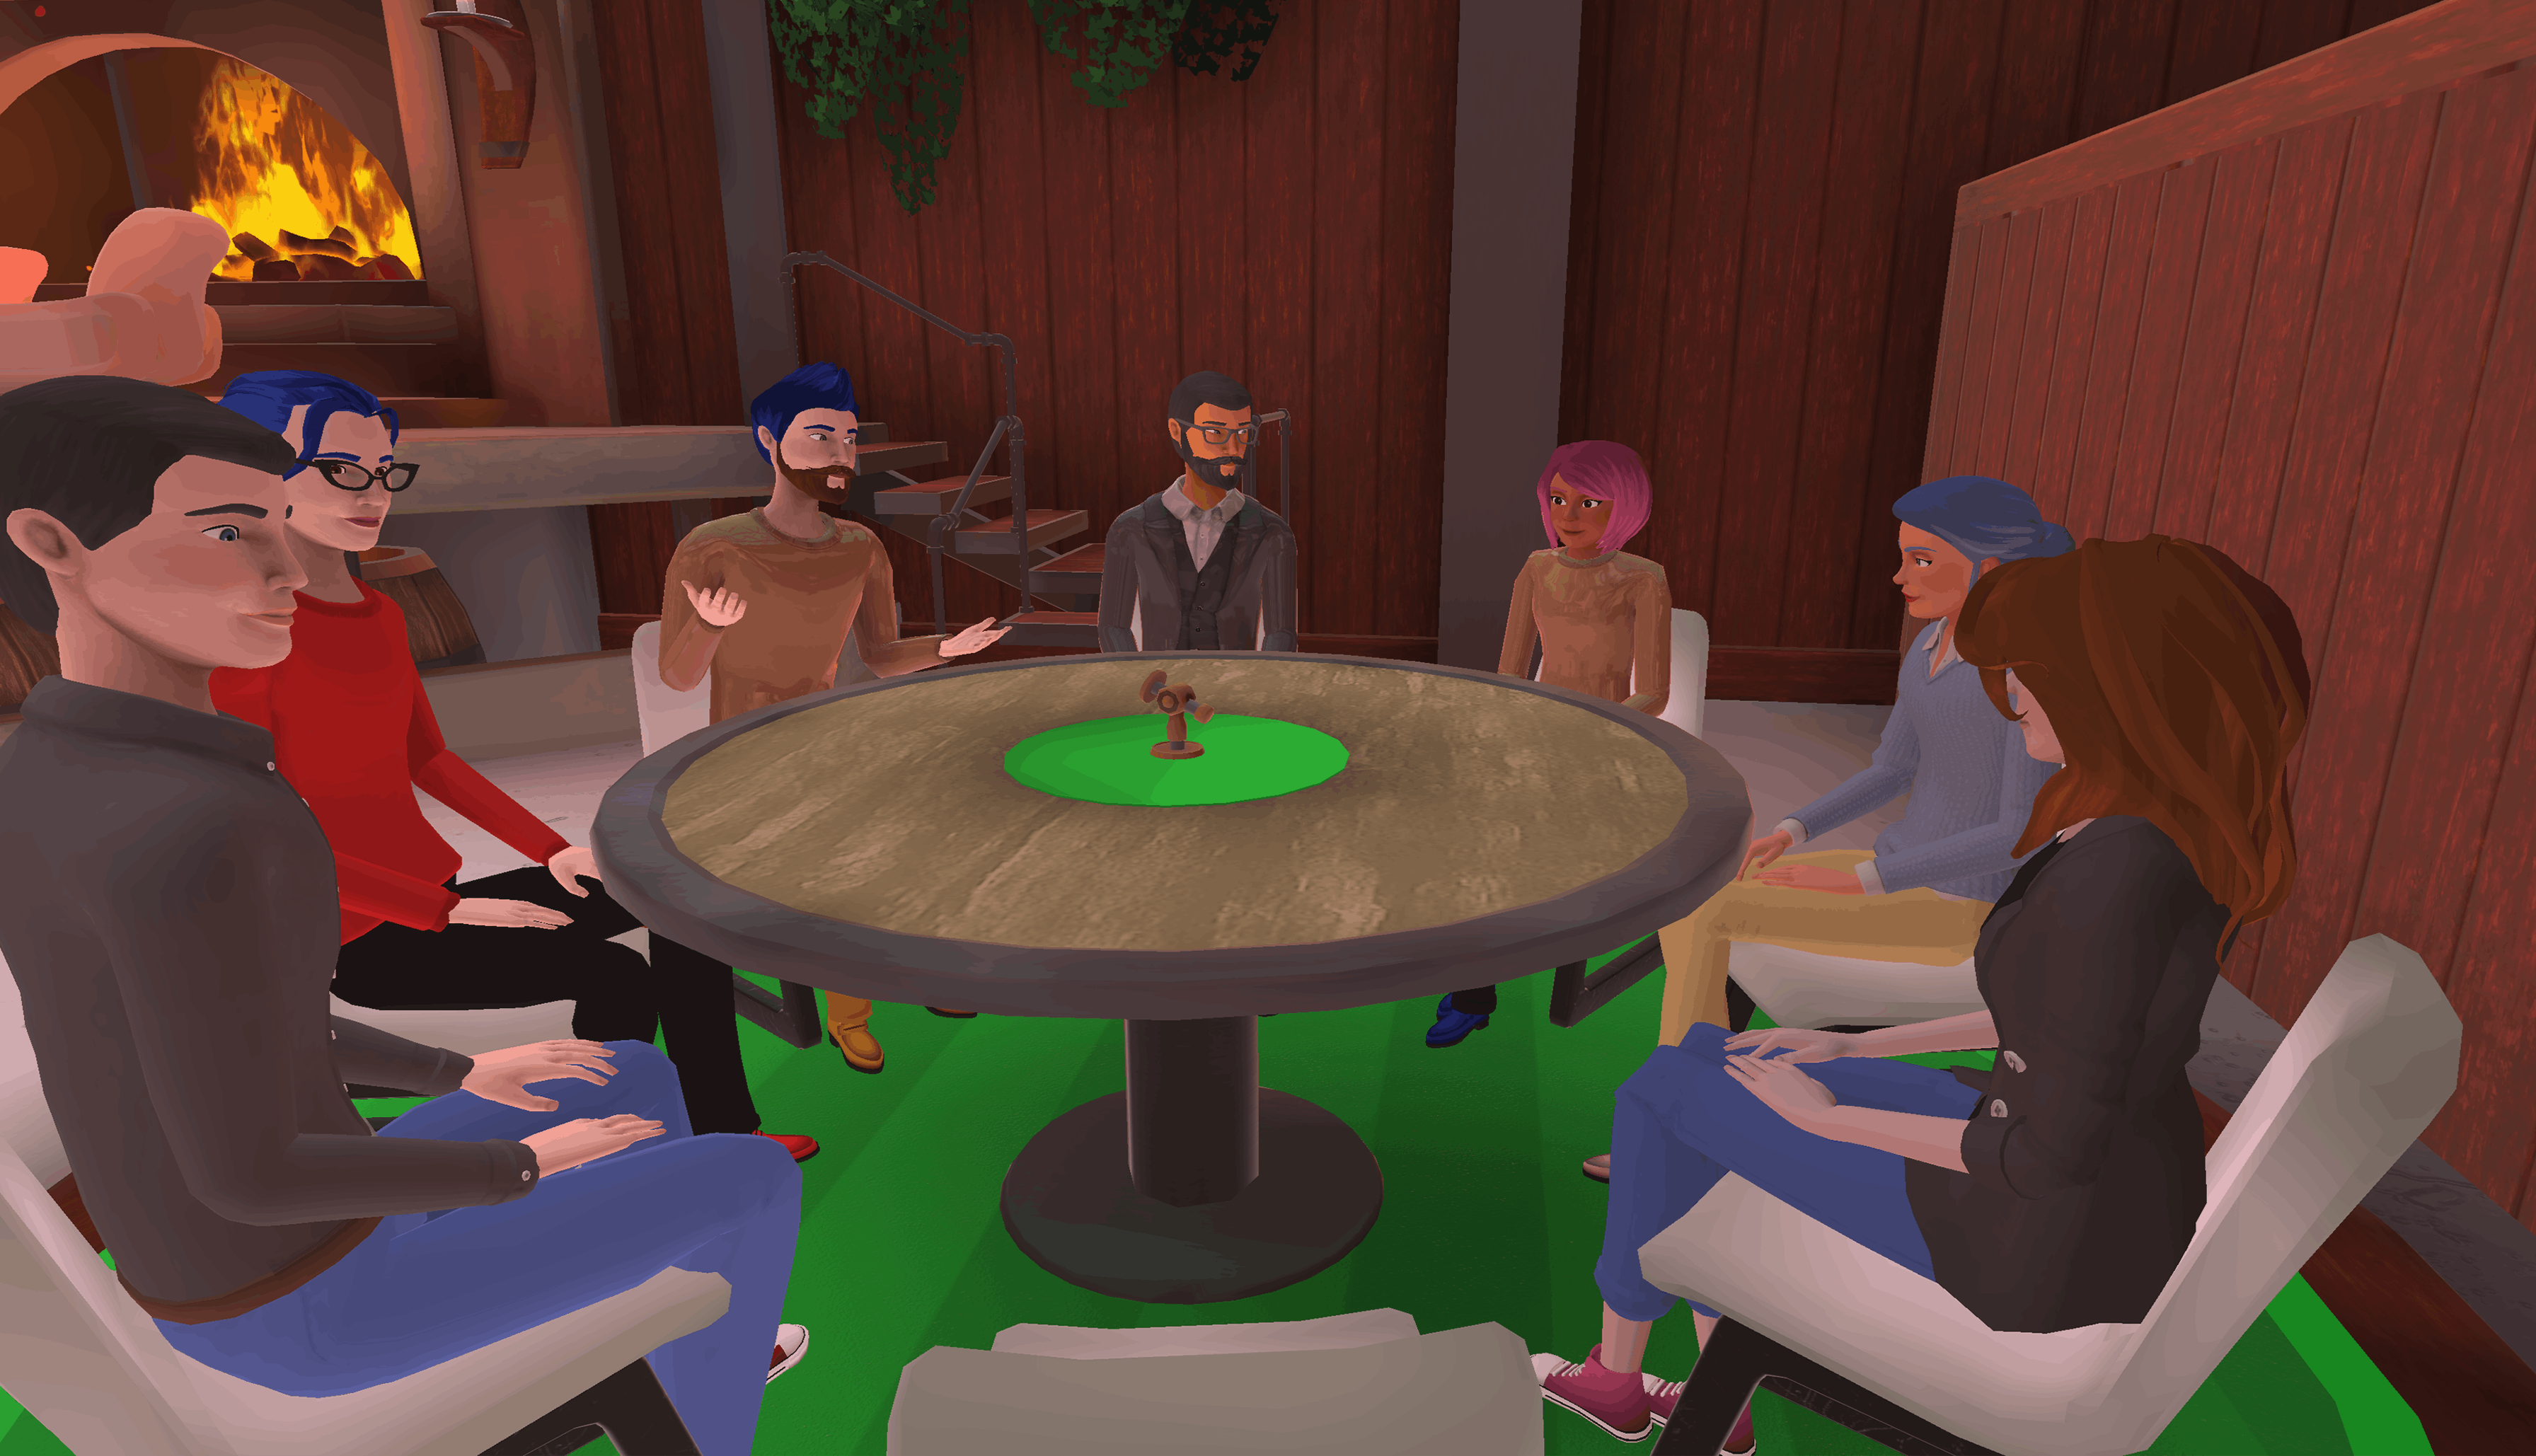 hosting book clubs in Teooh's avatar-based virtual platform